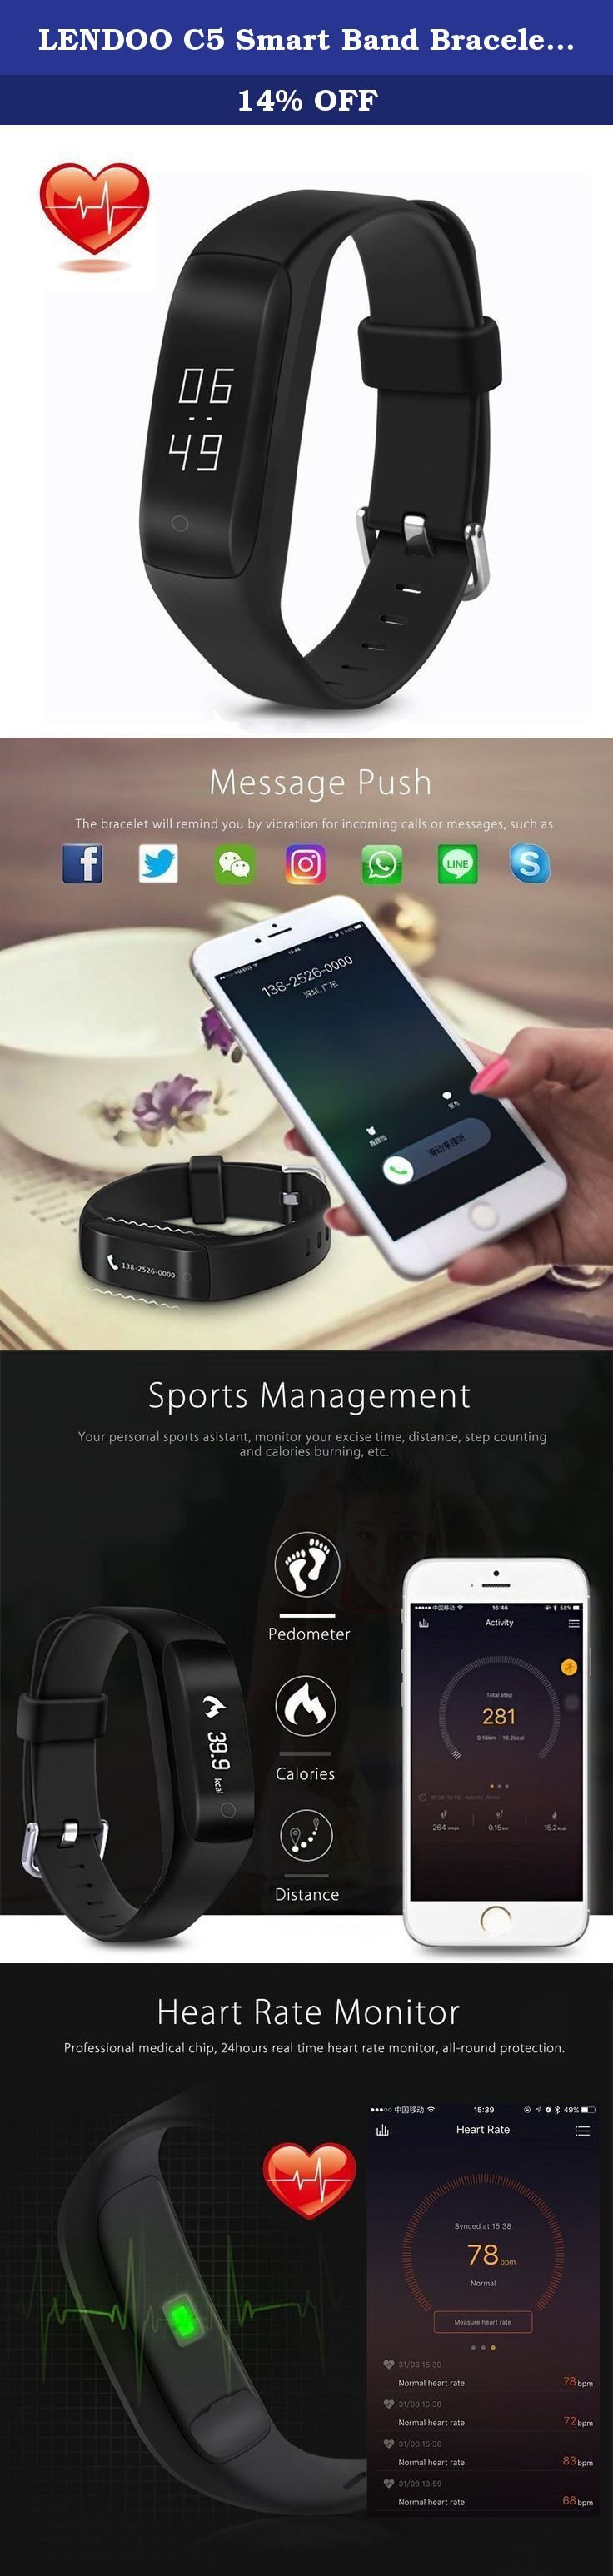 LENDOO C5 Smart Band Bracelet with Dynamic Heart Rate Monitor - OLED Display Fitness Activity Tracker Wristband Watch for Android 4.4 iOS 8.0 iPhone 7 Sumsung(black). Specifications: Small body with big screen, 0.91 inches, gives you a good sight enjoyment. Monitors your sleep duration and quality. Activity tracking with activity goal, activity time, steps and distance and inactivity alerts. Can measure heart rate, energy pointer, smart calories and training benefit. Provides vibrating…